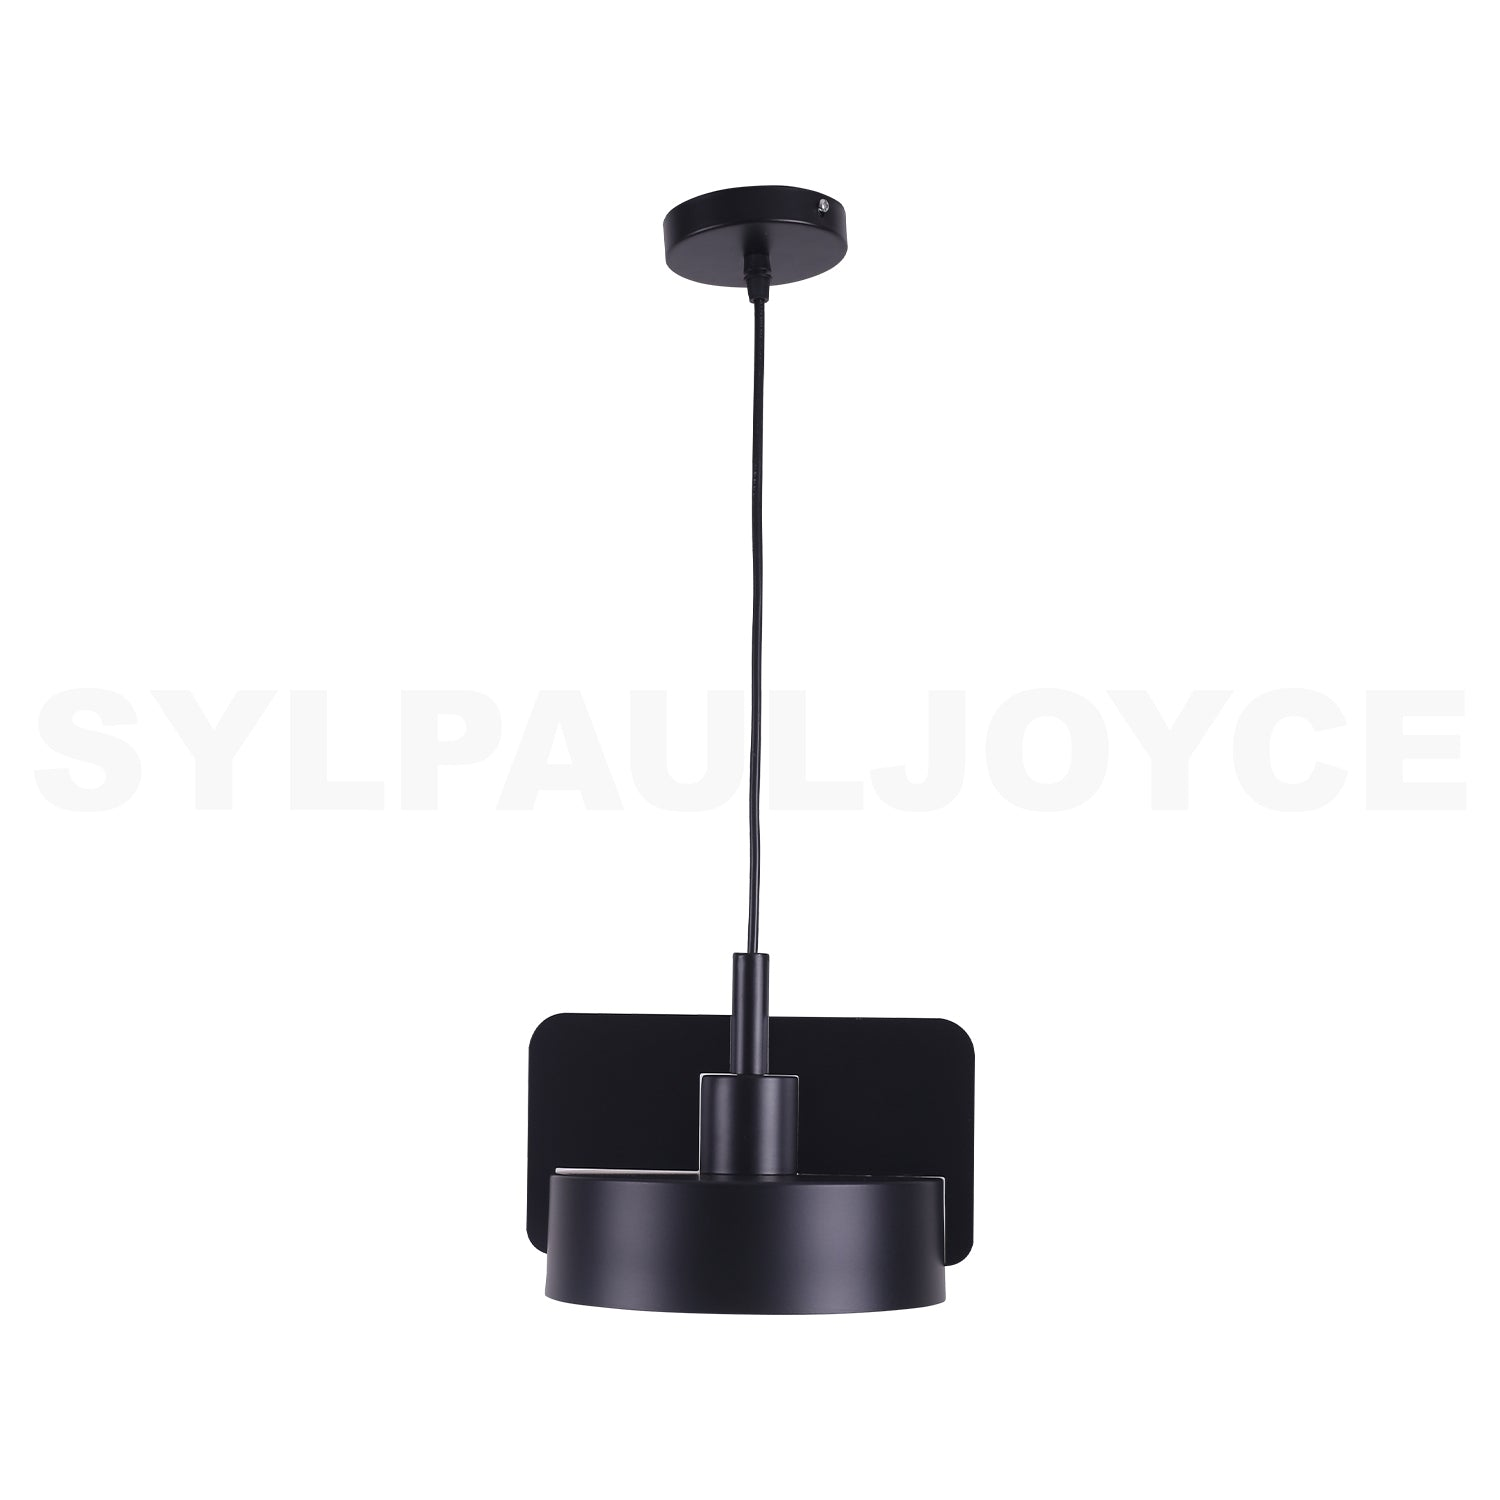 7333A-1 Drop Light - Sylpauljoyce Furniture, Lights & Decor